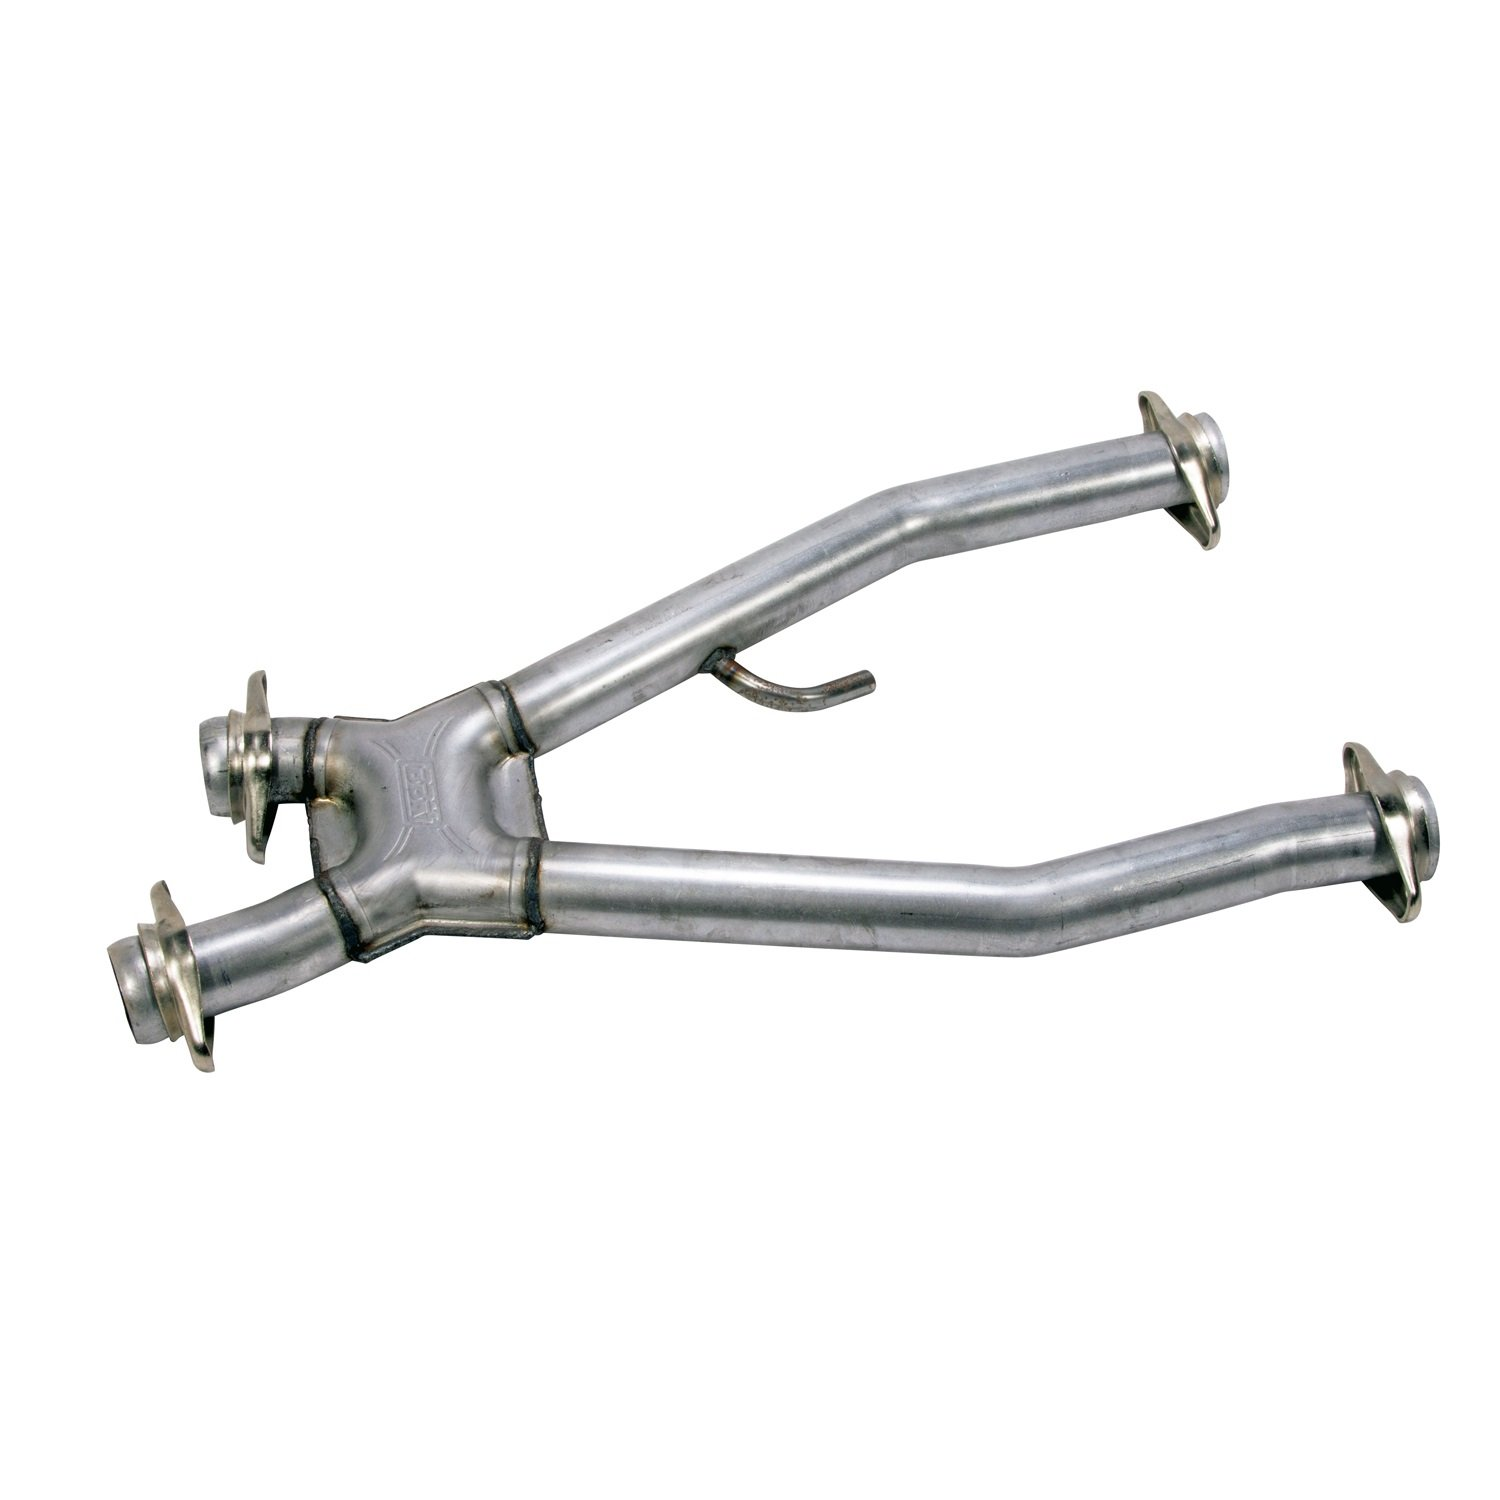 BBK 1671 2-1/2'' High Flow Performance Short Mid X Pipe Off-Road Only Version for Ford Mustang 5.0L (Required For Use With BBK Long Tube Exhaust Headers